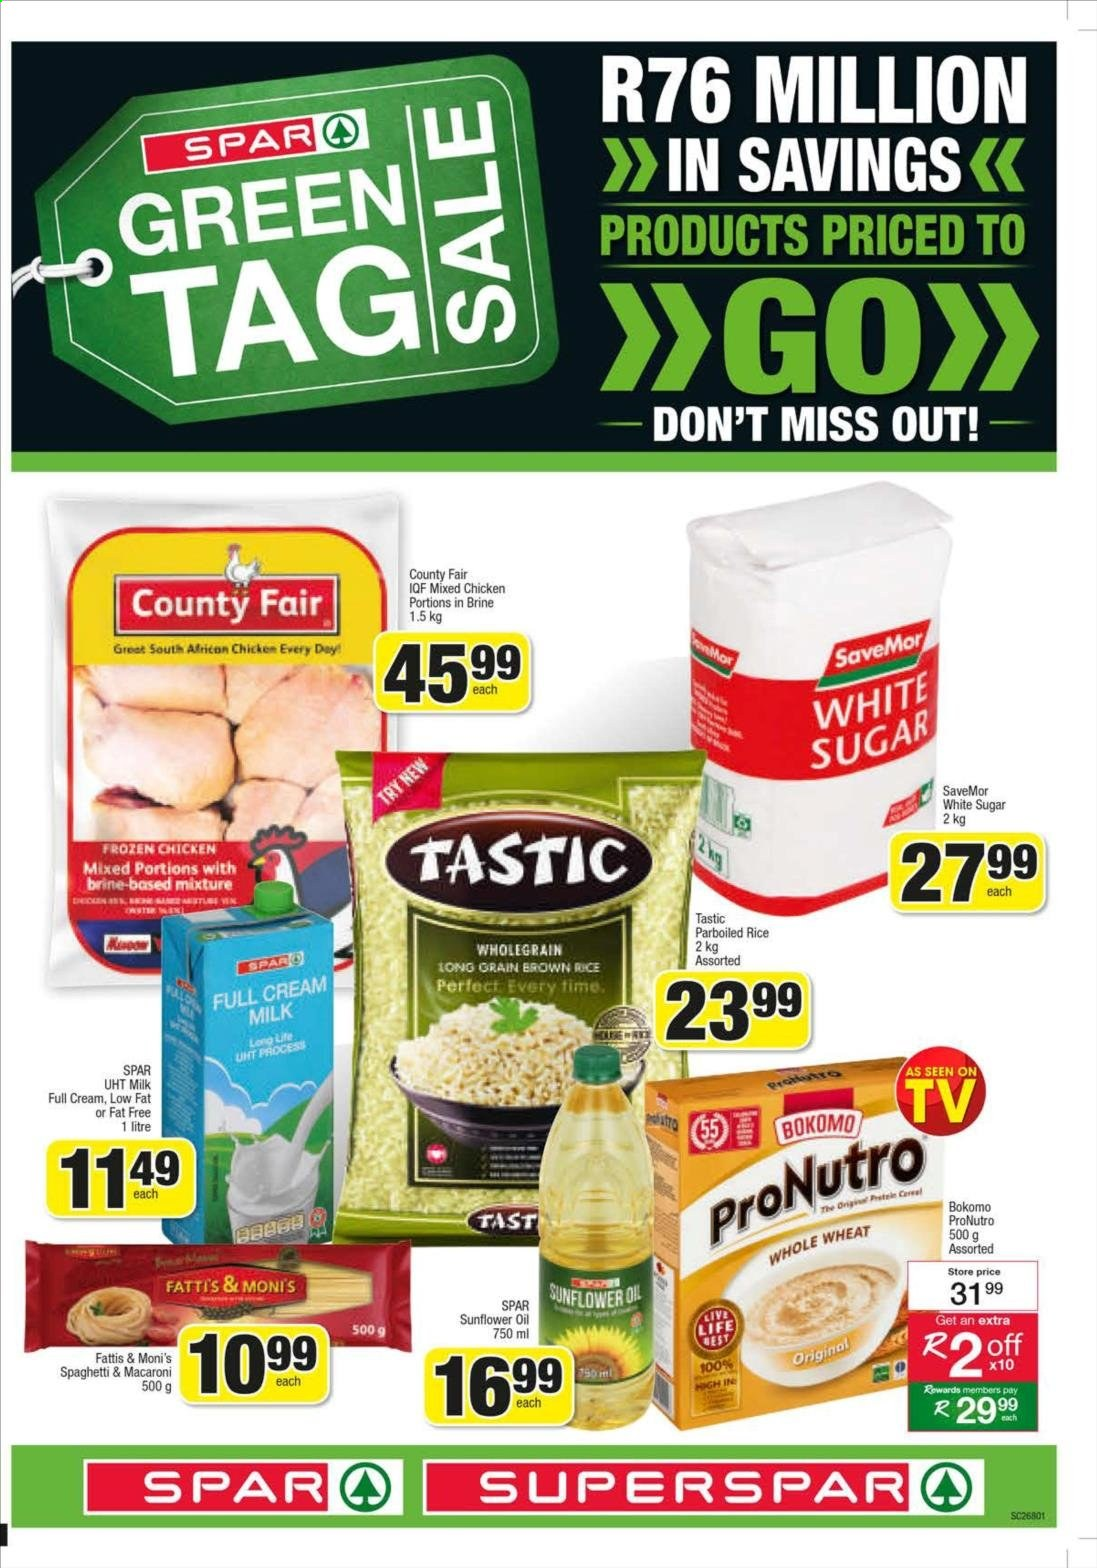 SPAR catalogue  - 02.03.2020 - 02.23.2020. Page 1.